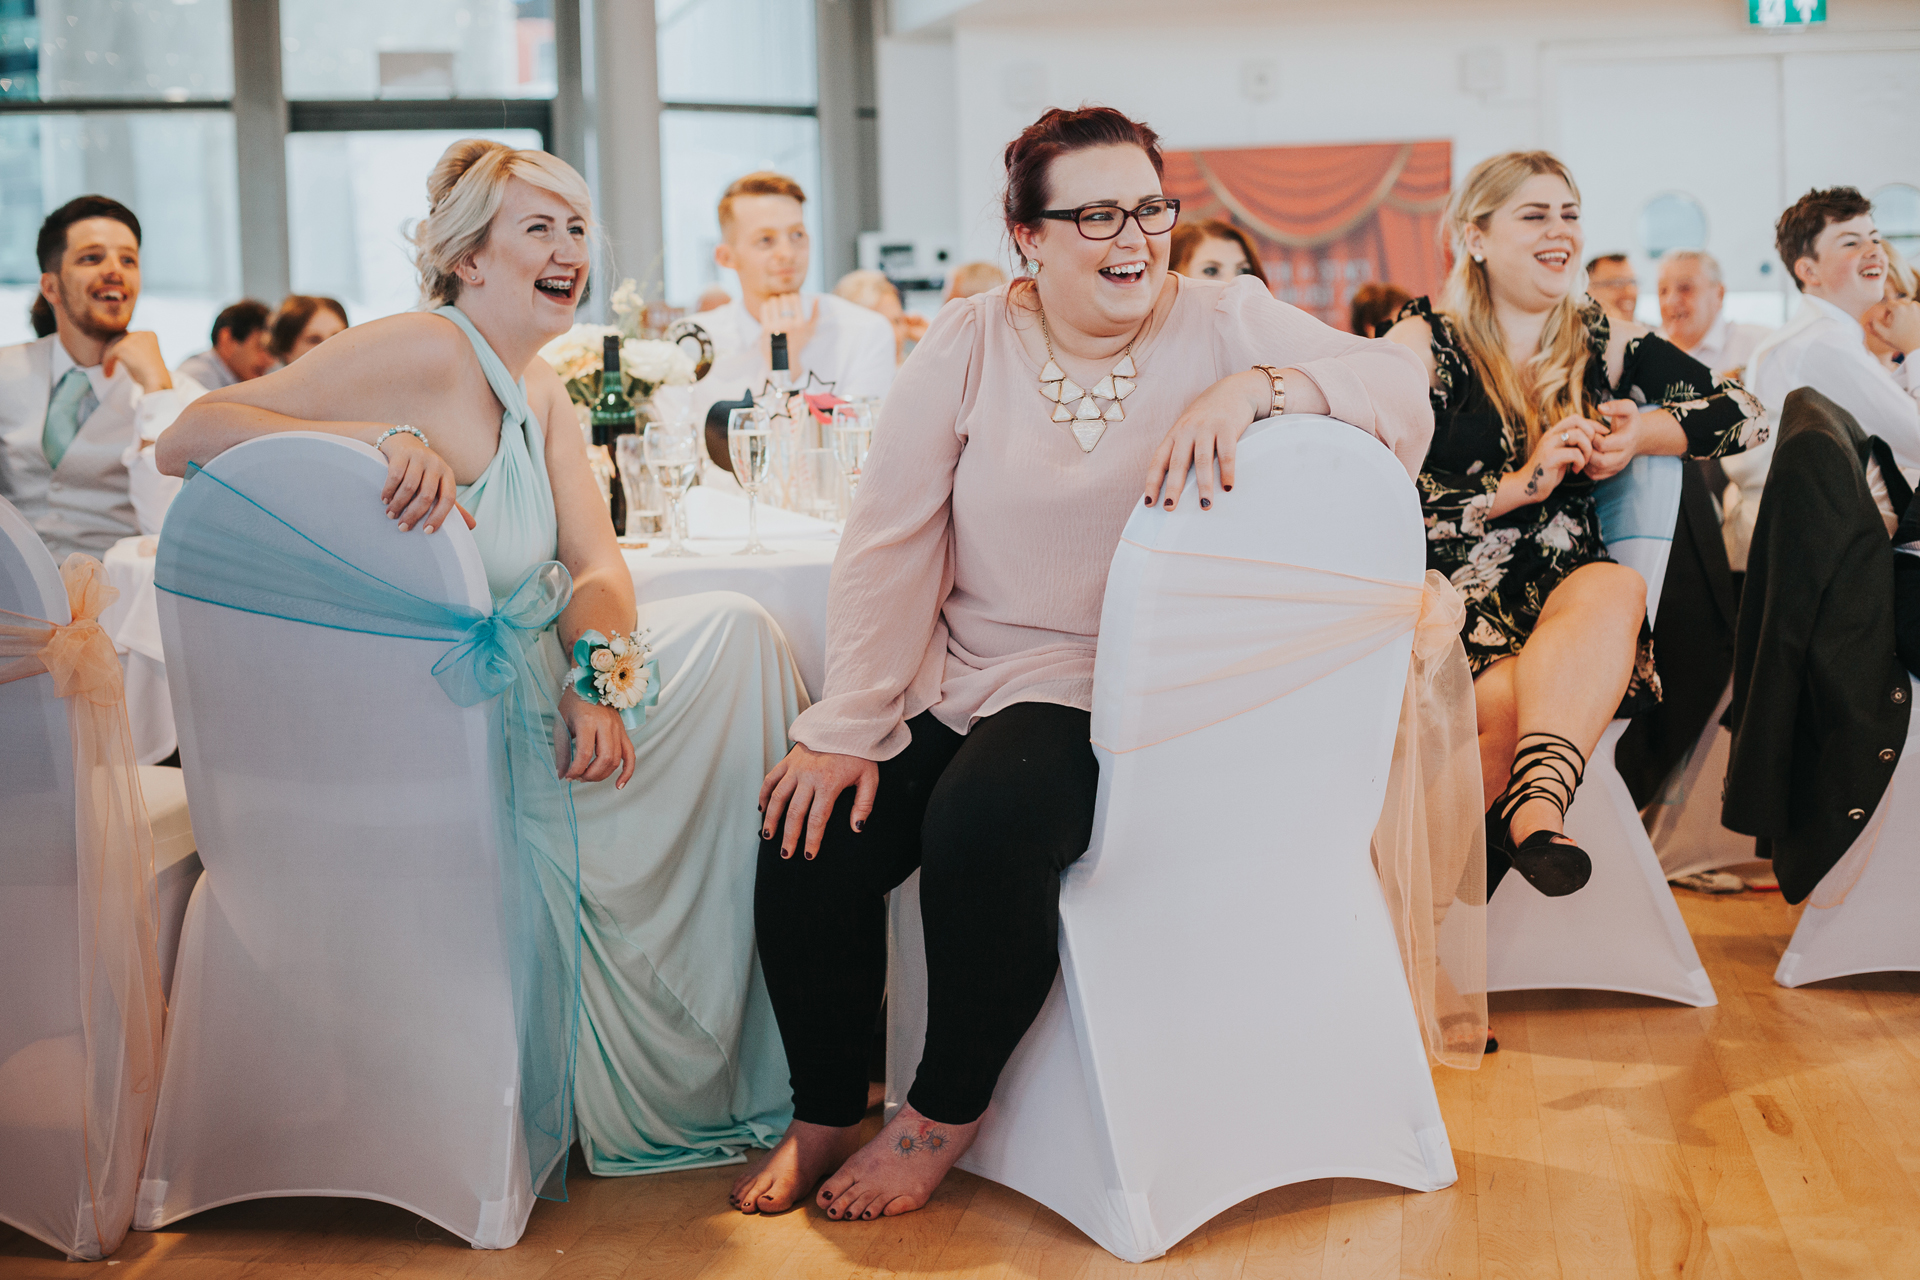 Wedding guests laughing.